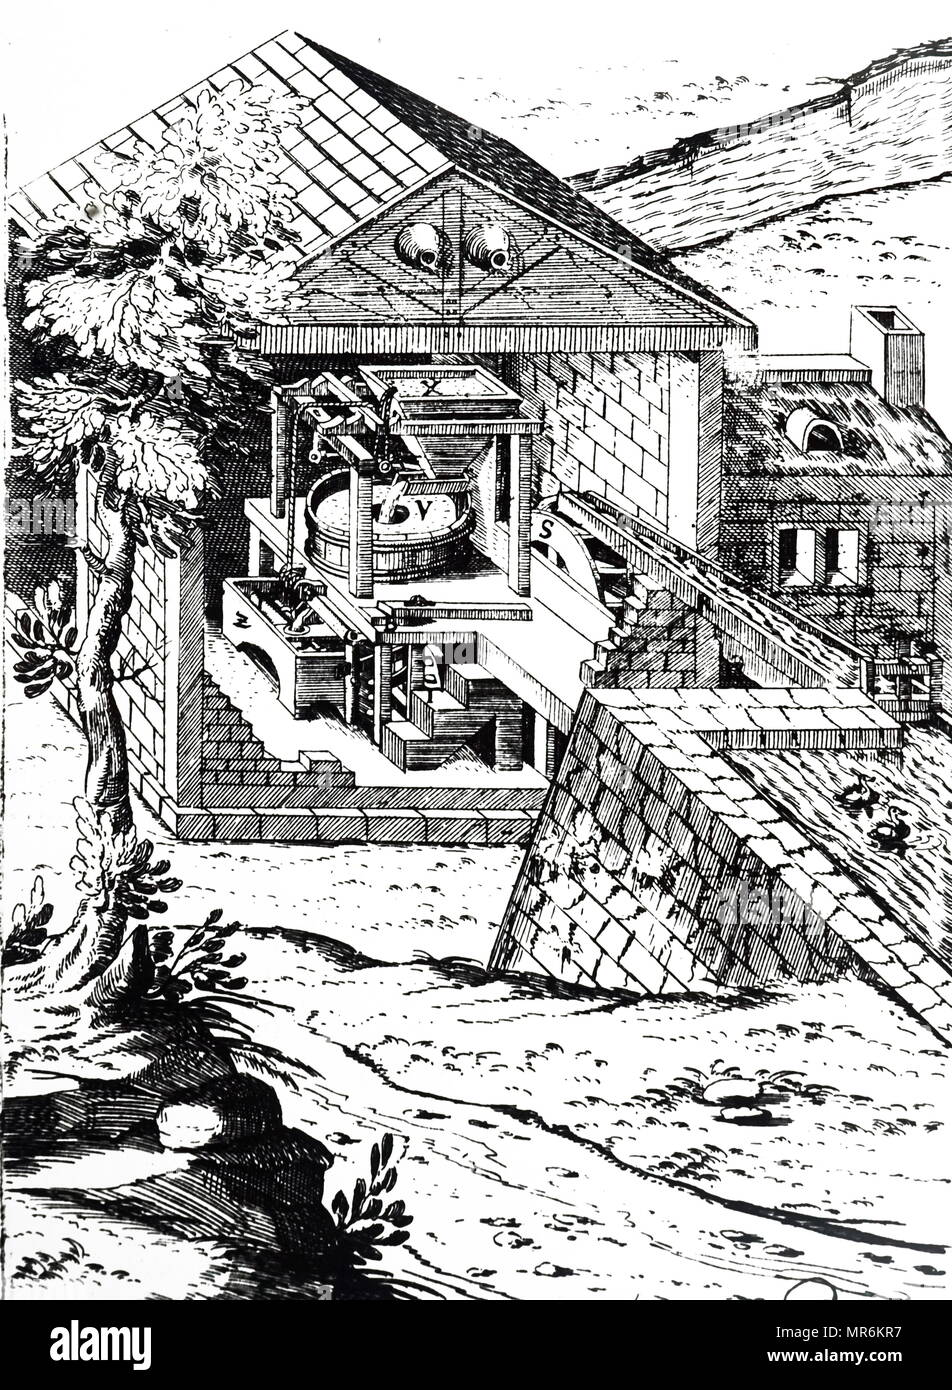 Engraving depicting a water-powered flour mill. Dated 17th century - Stock Image